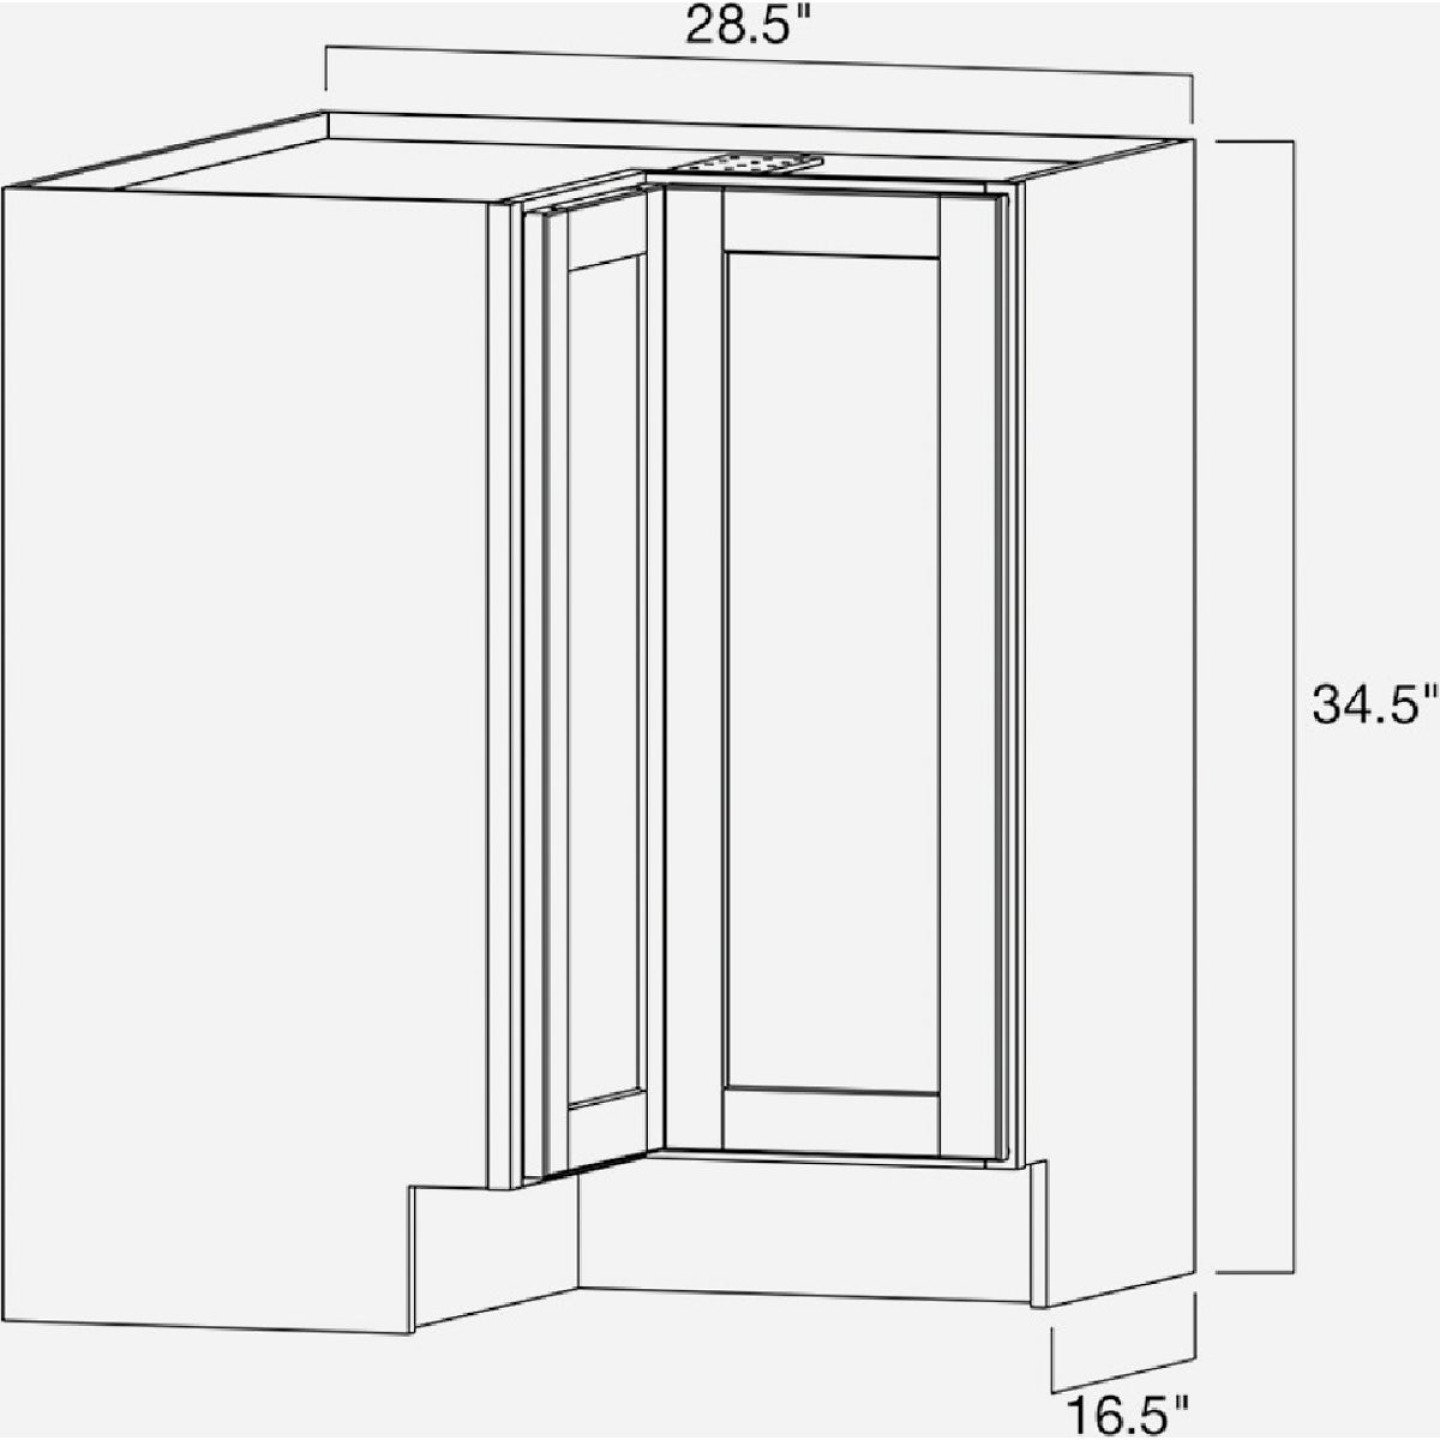 Continental Cabinets Andover Shaker 36 In. W x 34-1/2 In. H x 24 In. D White Thermofoil Lazy Susan Corner Base Kitchen Cabinet Image 4